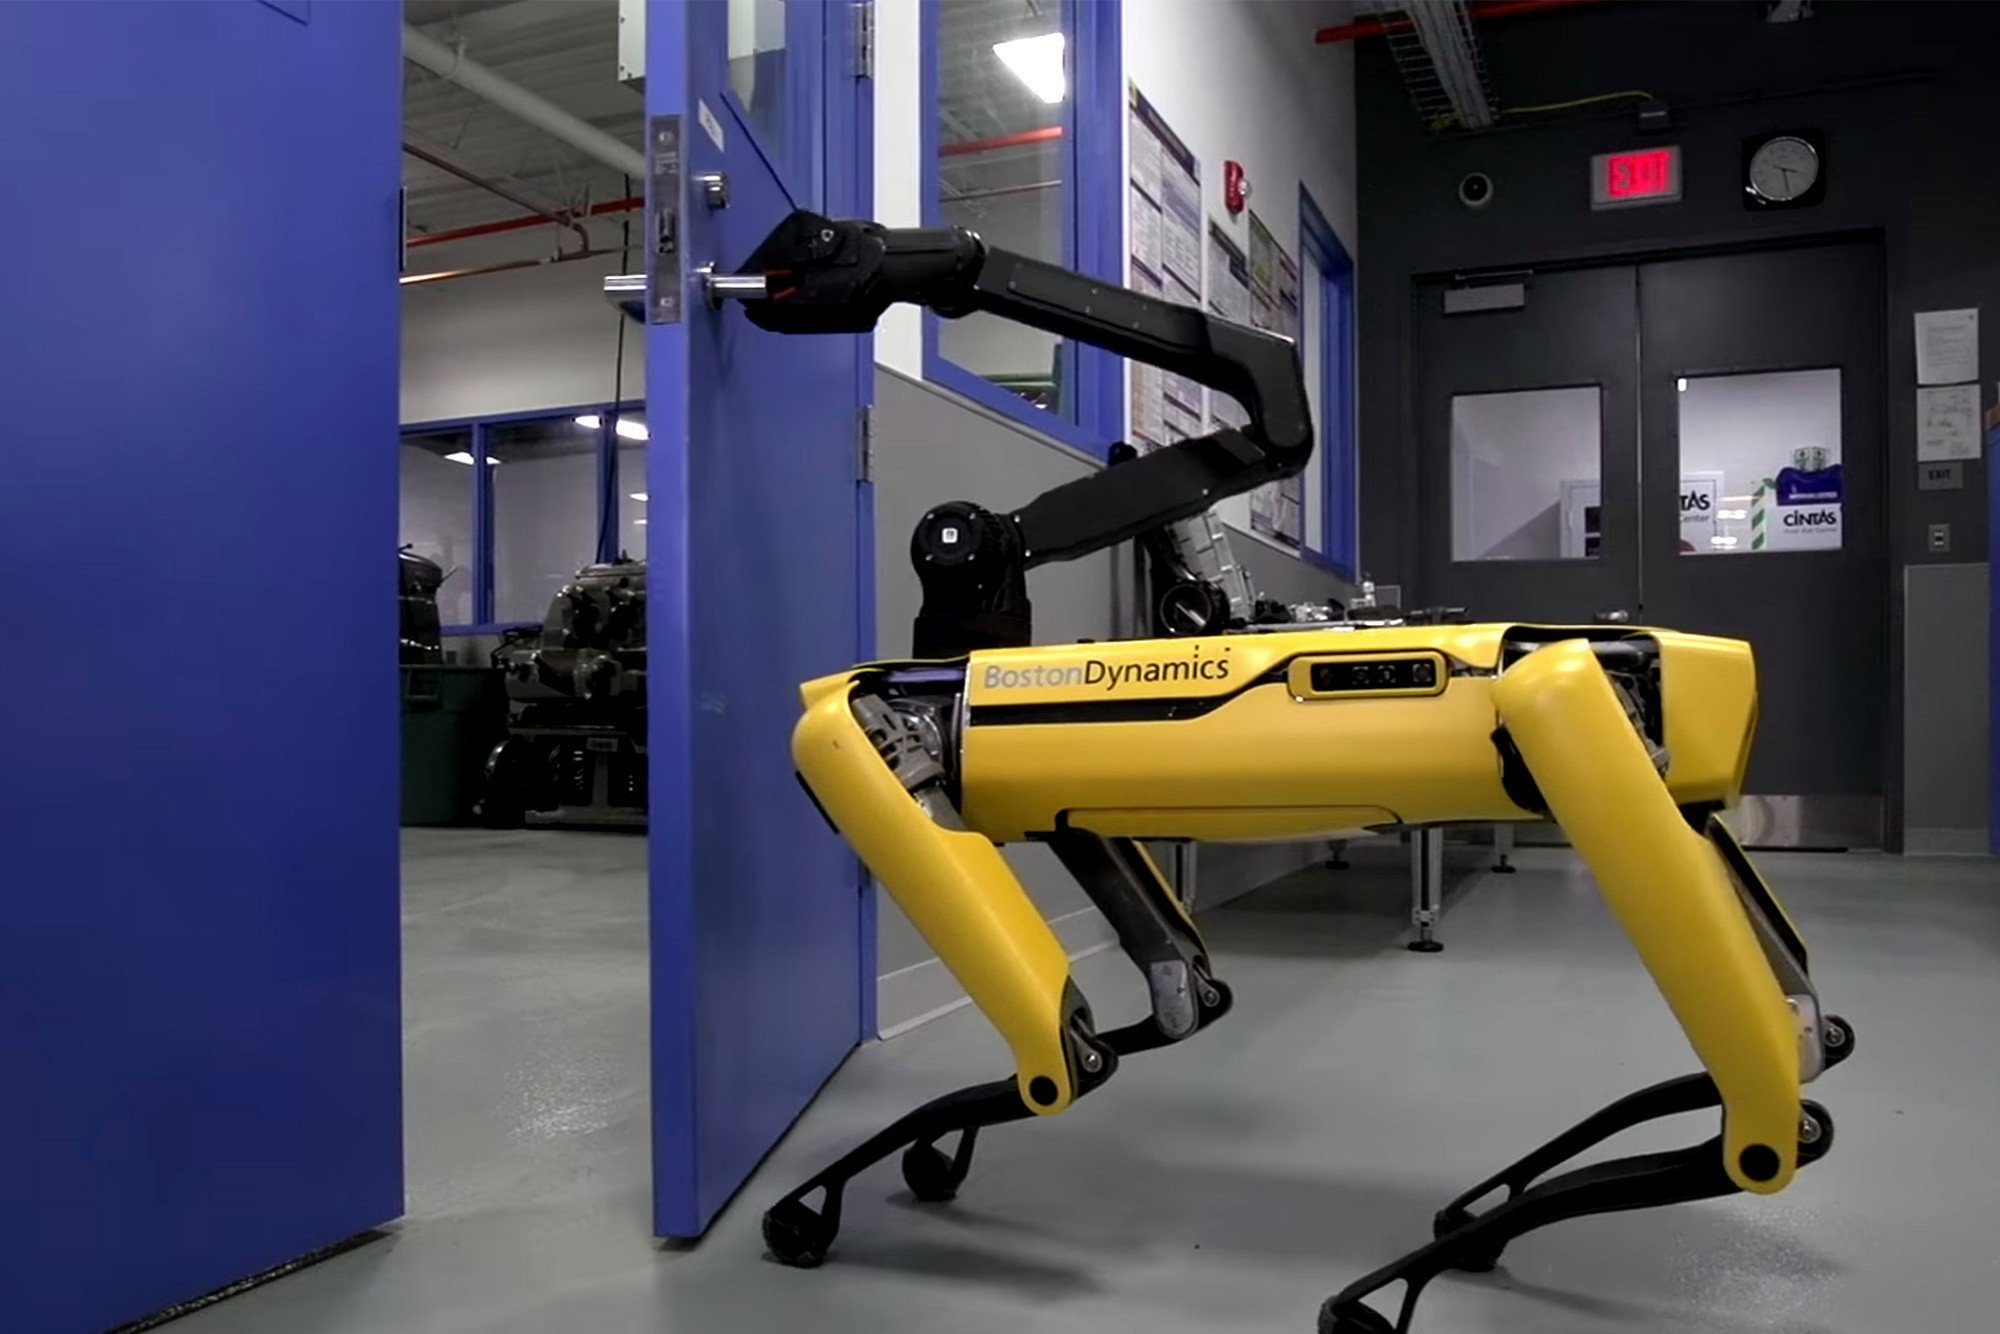 This life-like robotic dog is both creepy and cool